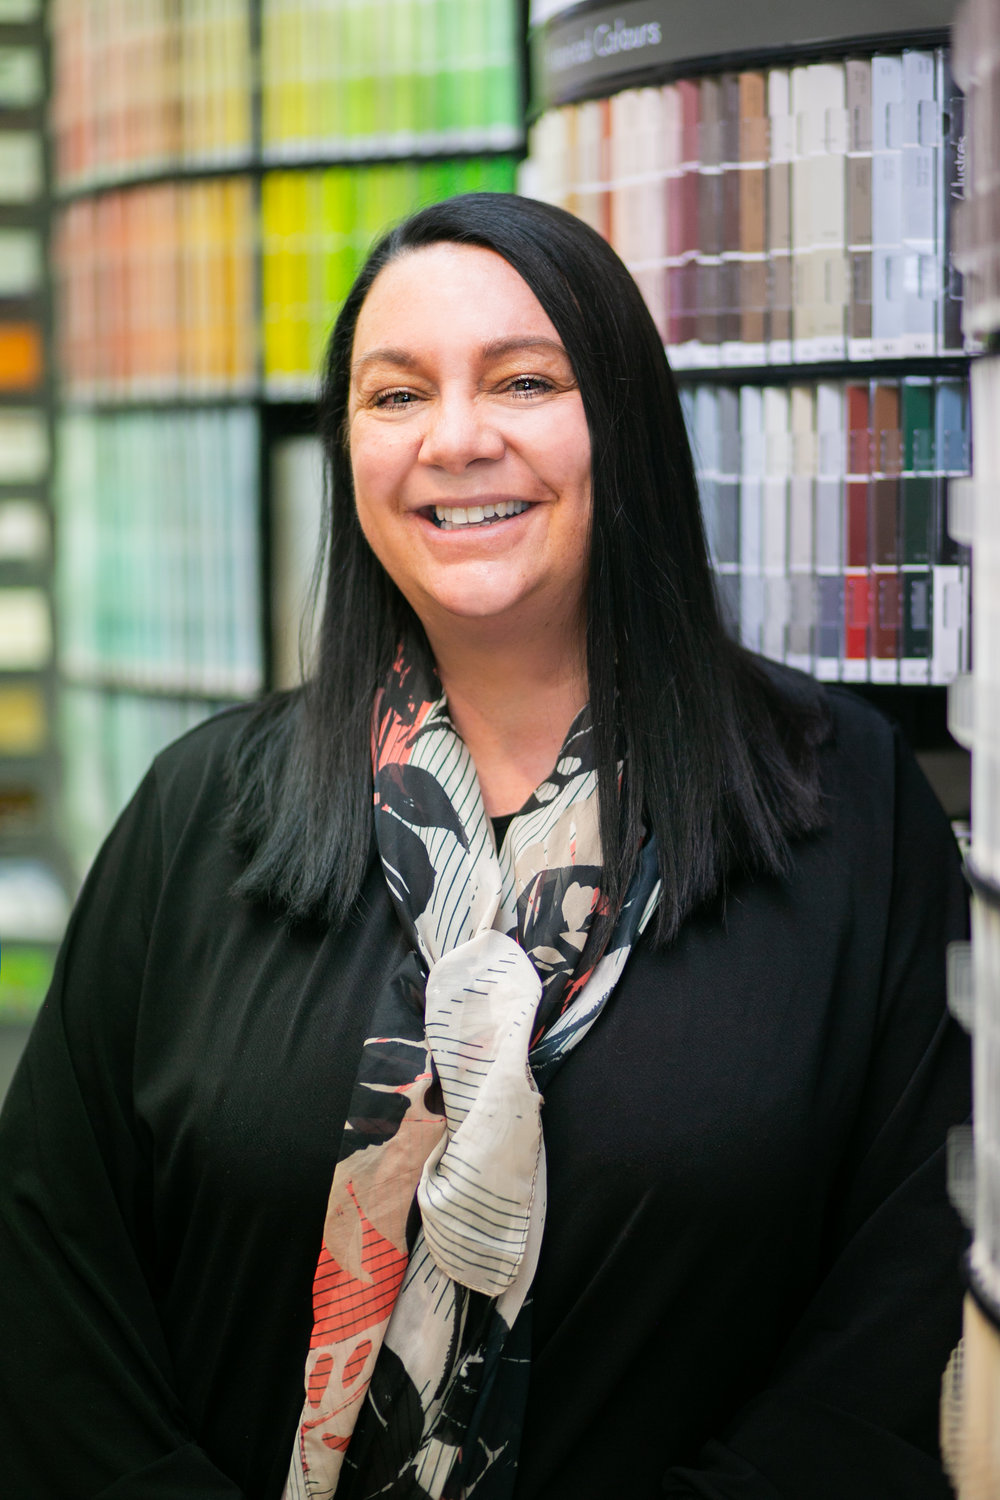 Meet Hayley… - Hayley is the manager at Paint, Decor & More and joined us in 2018.With a background in health care, Hayley has always enjoyed helping people - and she's been able to transfer that love into ensuring that customer's receive the best recommendations and products to fit their needs!